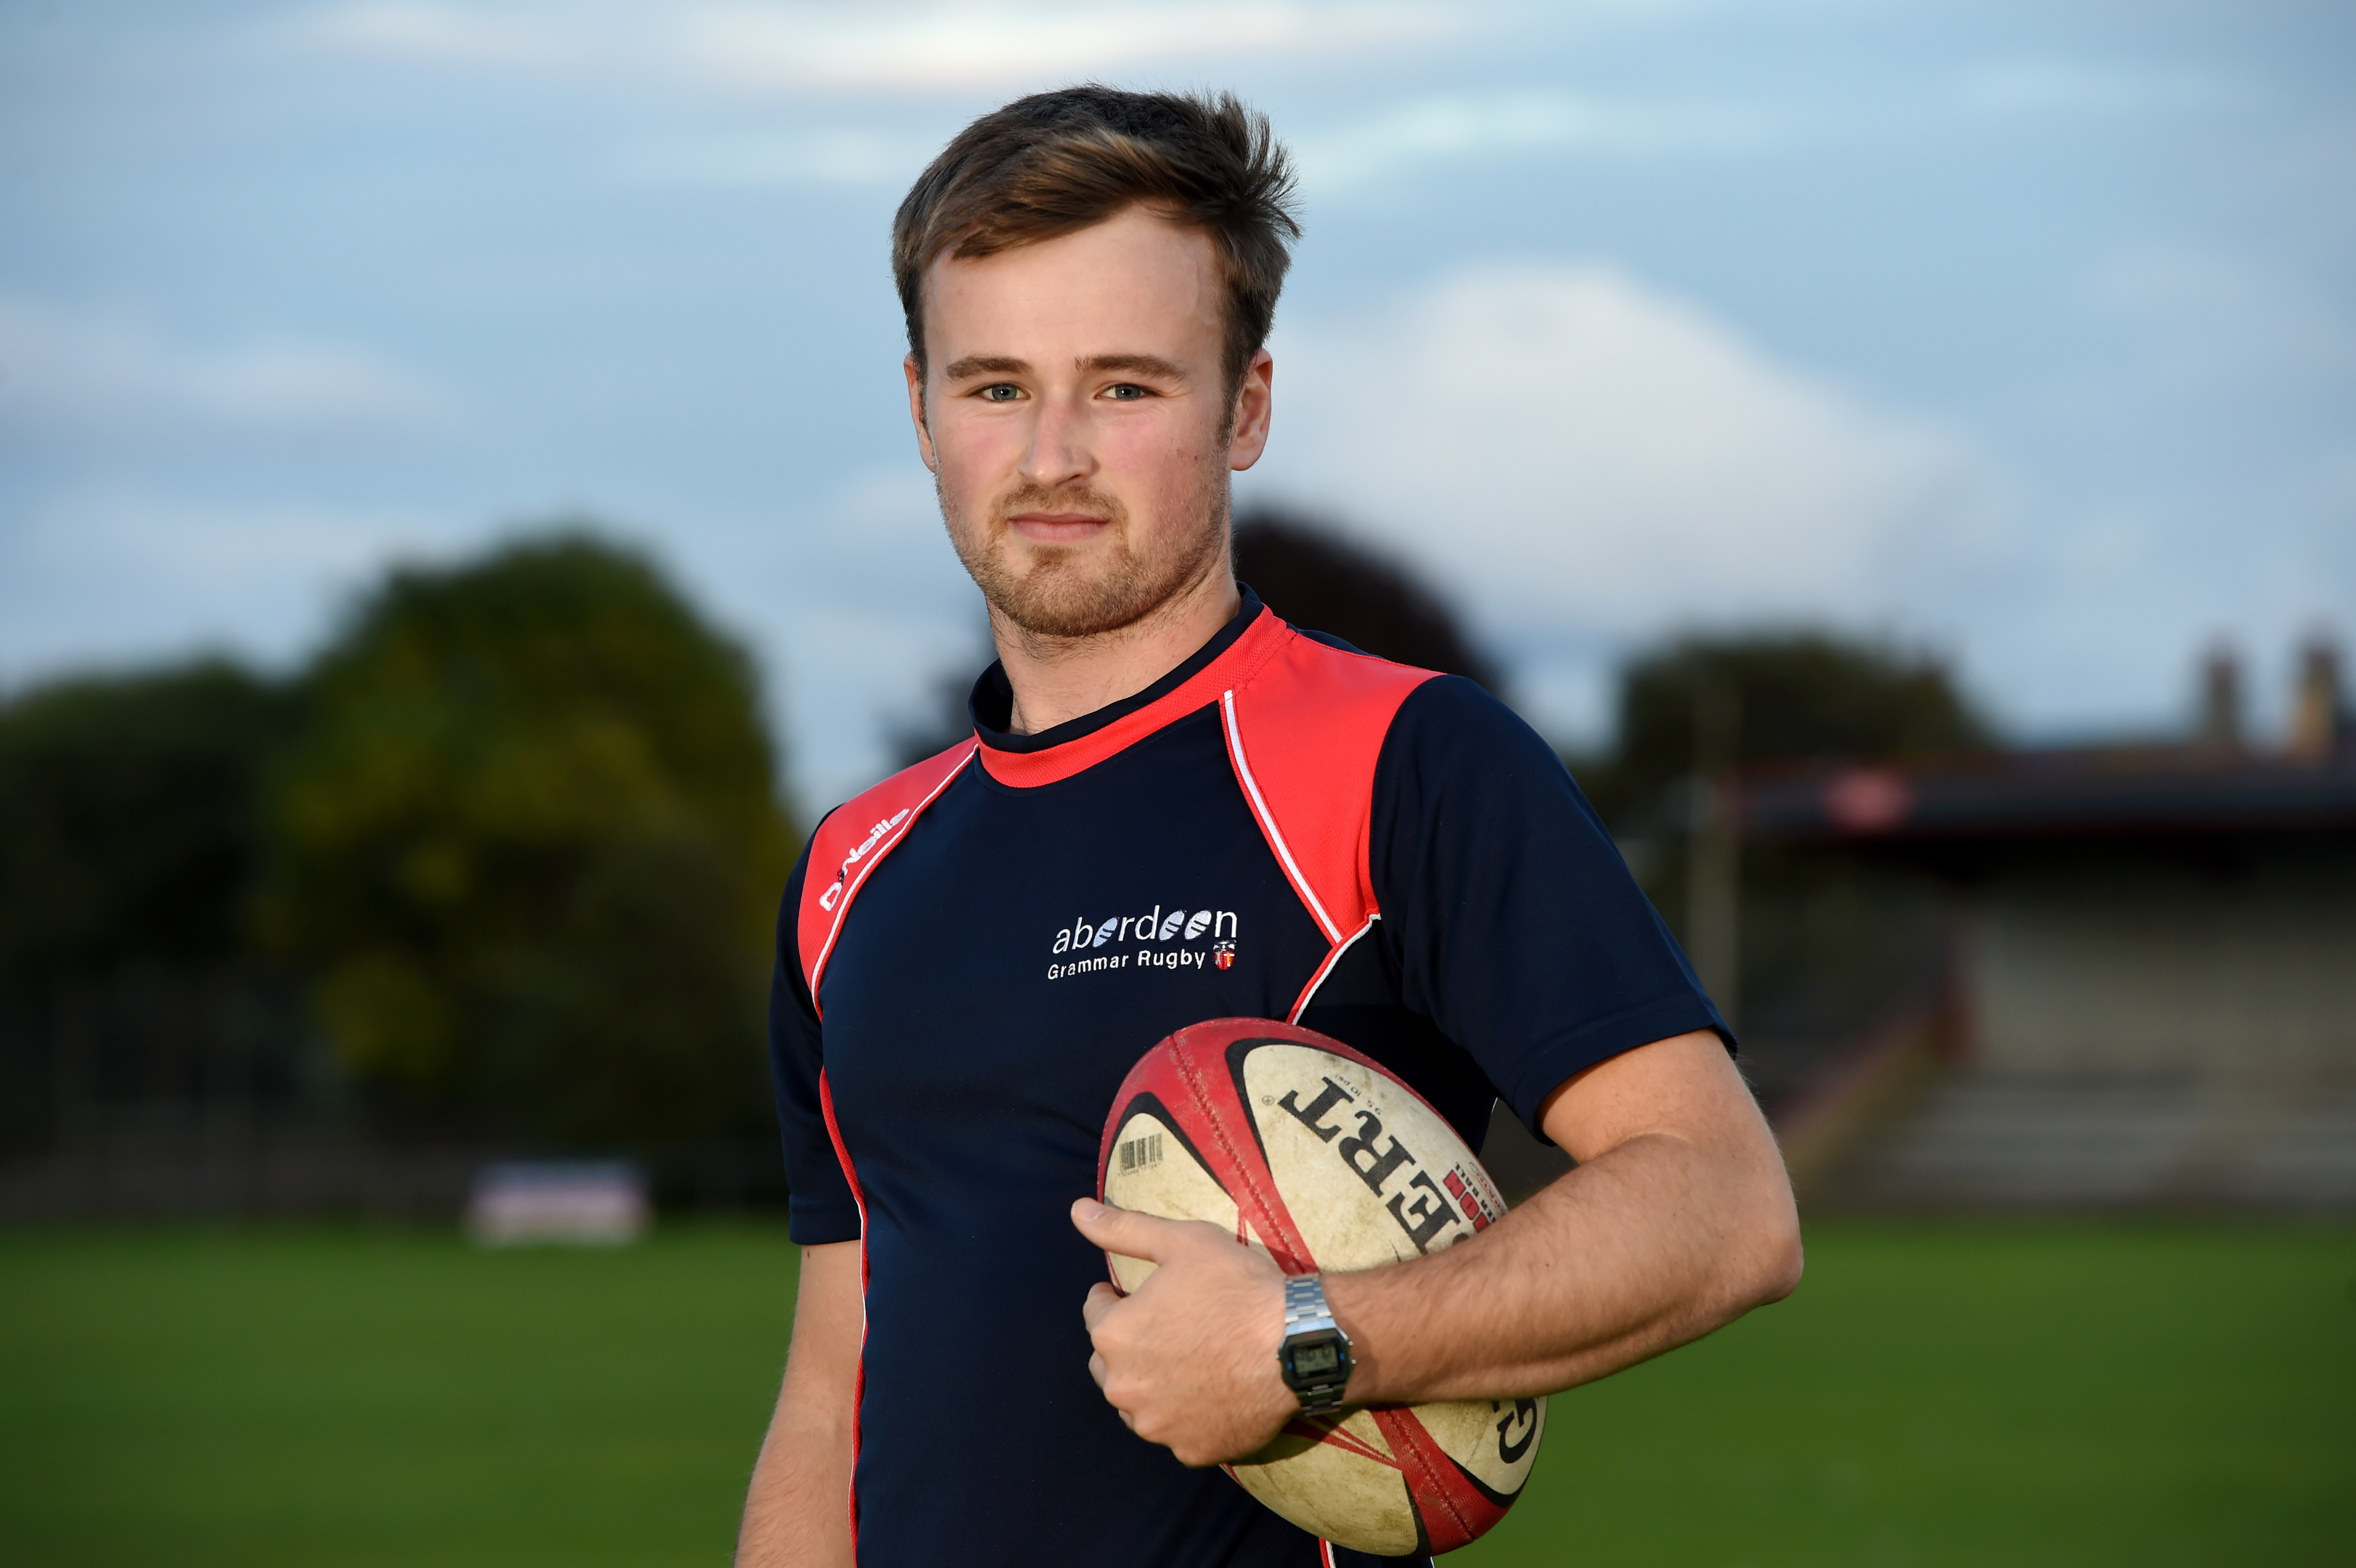 Aberdeen Grammar's Ciaran Wood, who joined from Highland in the summer.